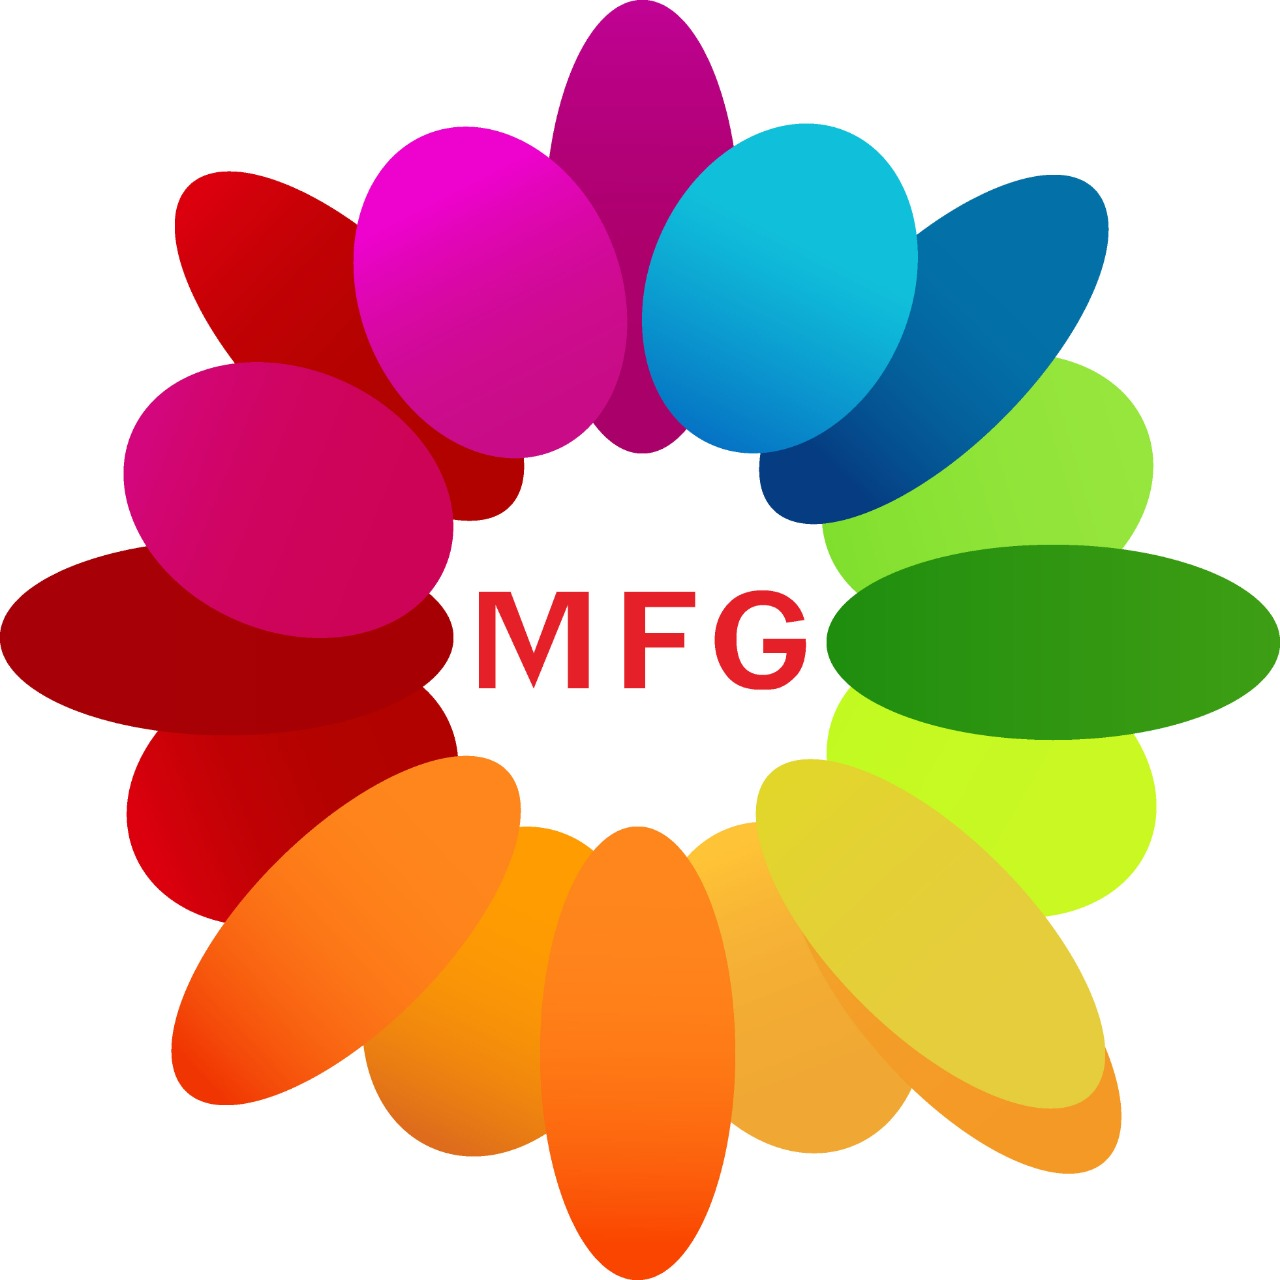 3 kgs Fruit Basket with flower arrangement